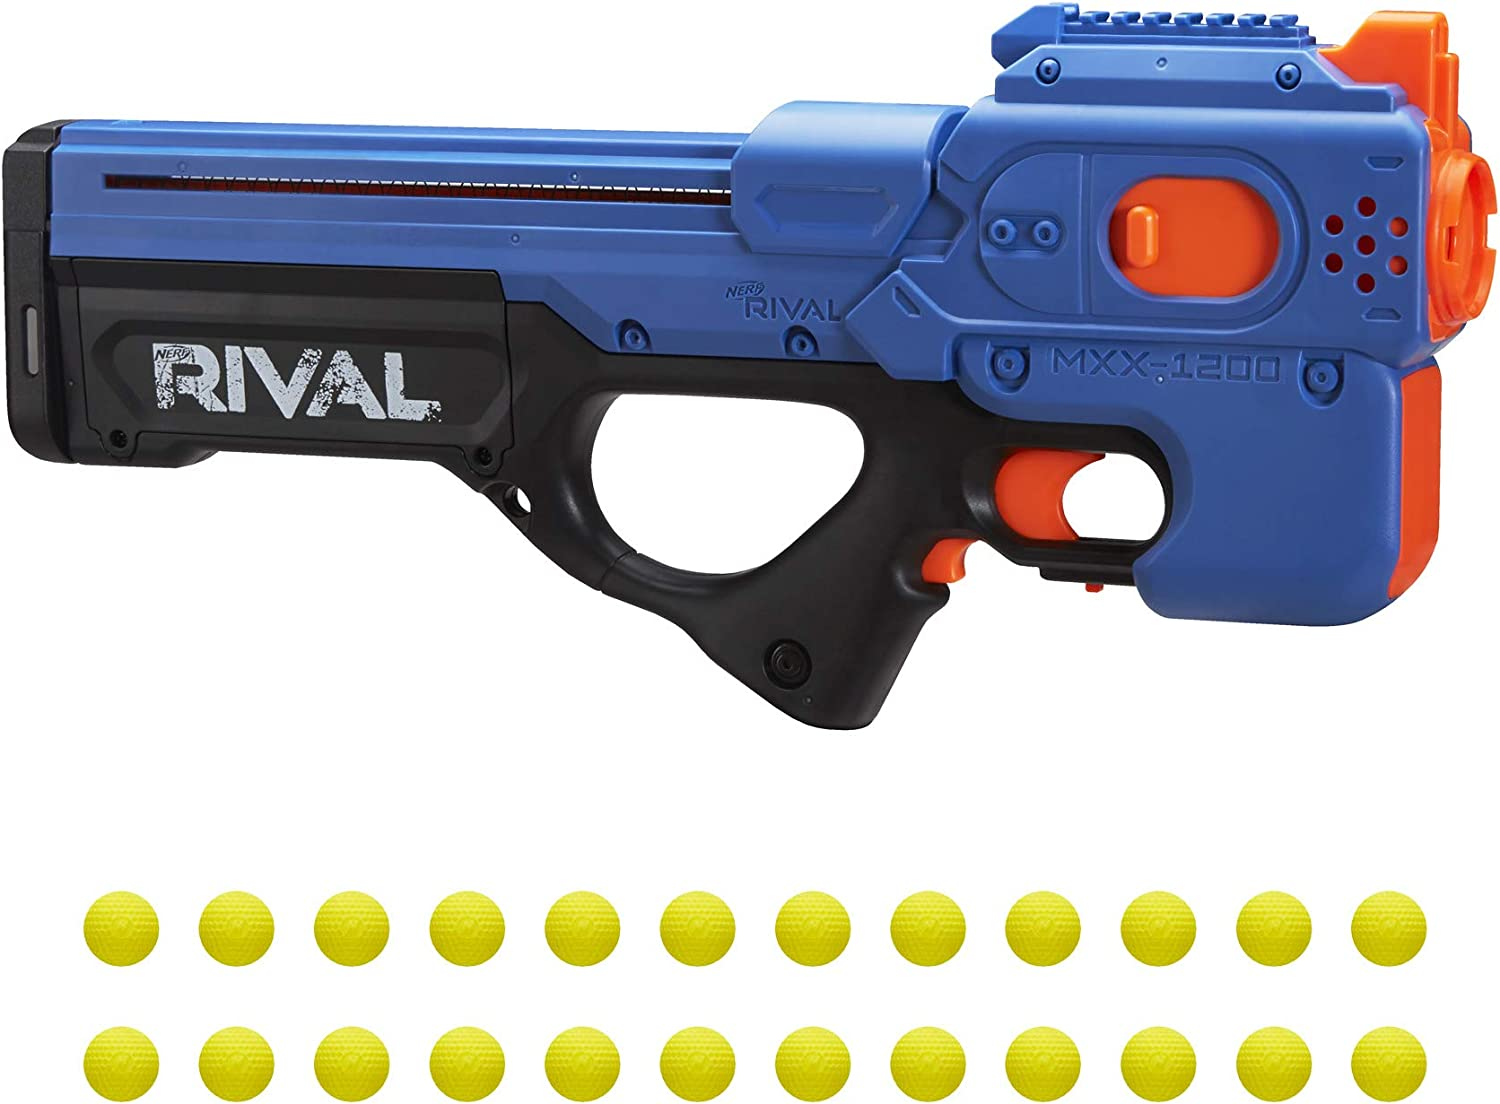 NERF Rival Charger MXX-1200 Motorized Blaster -- 12-Round Capacity, 95 FPS Velocity -- Includes 24 Official Rival Rounds -- Team Blue